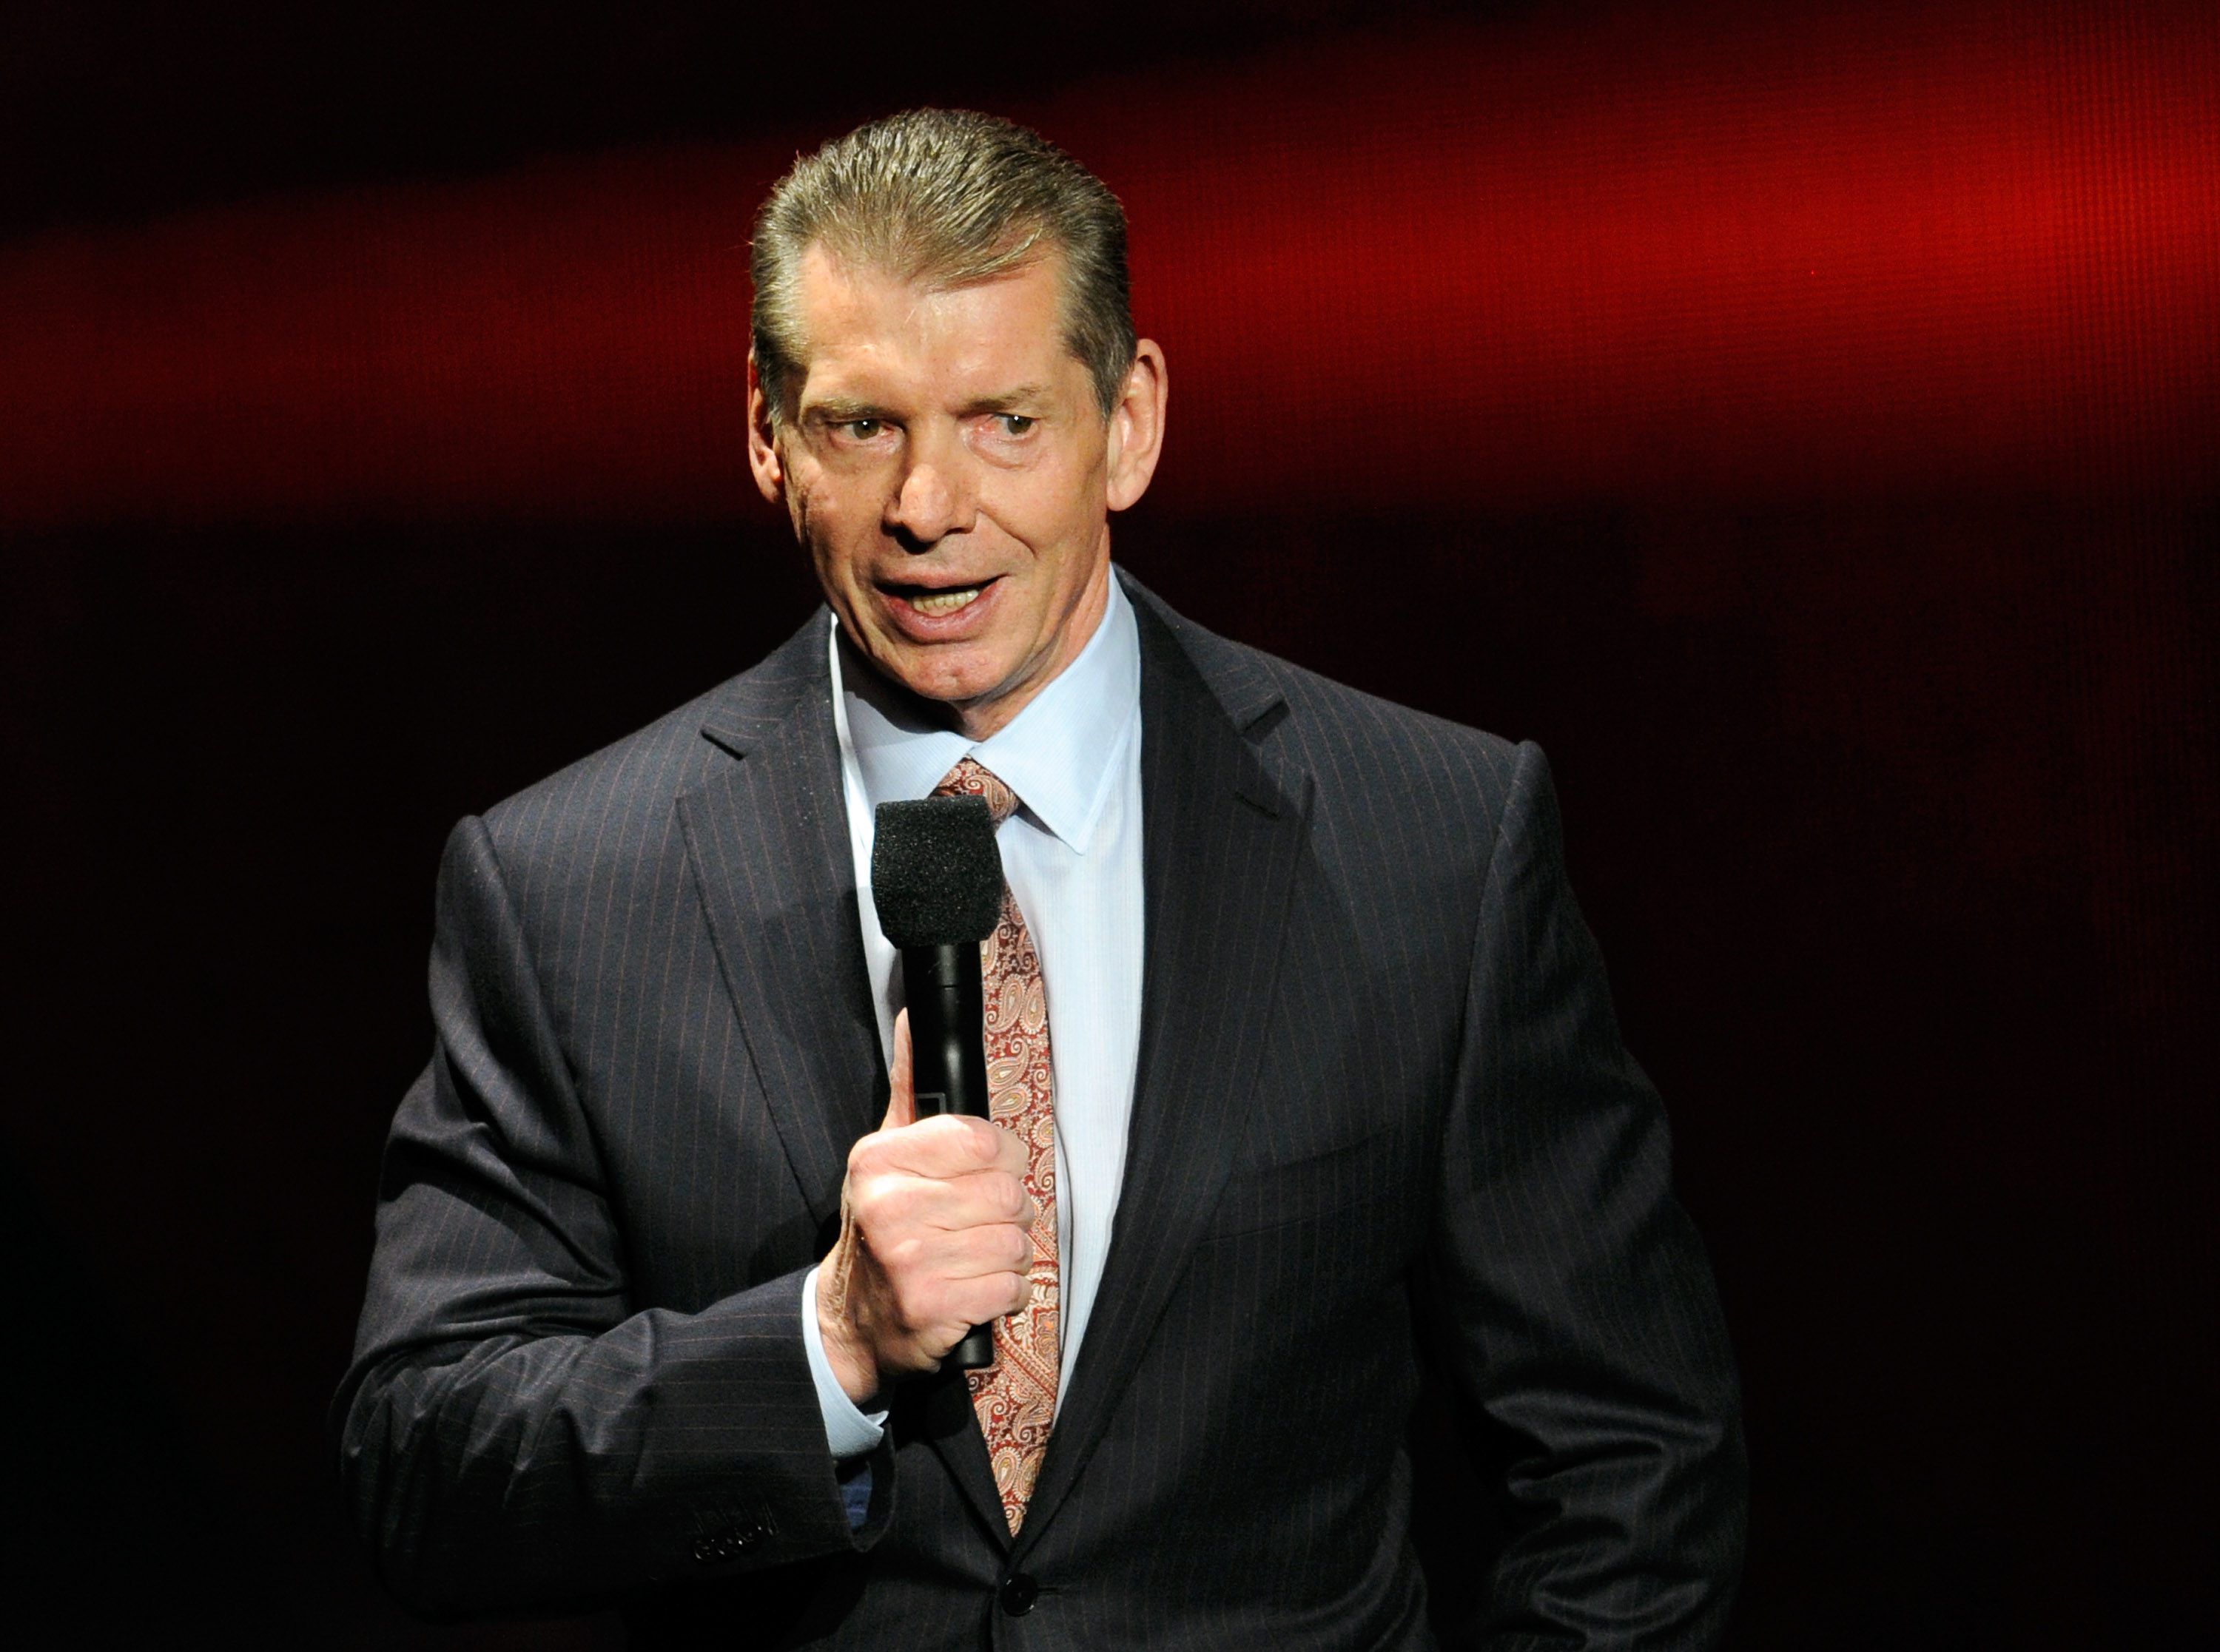 WWE Chairman and CEO Vince McMahon speaks at a news conference announcing the WWE Network at the 2014 International CES at the Encore Theater at Wynn Las Vegas on January 8, 2014 in Las Vegas, Nevada.